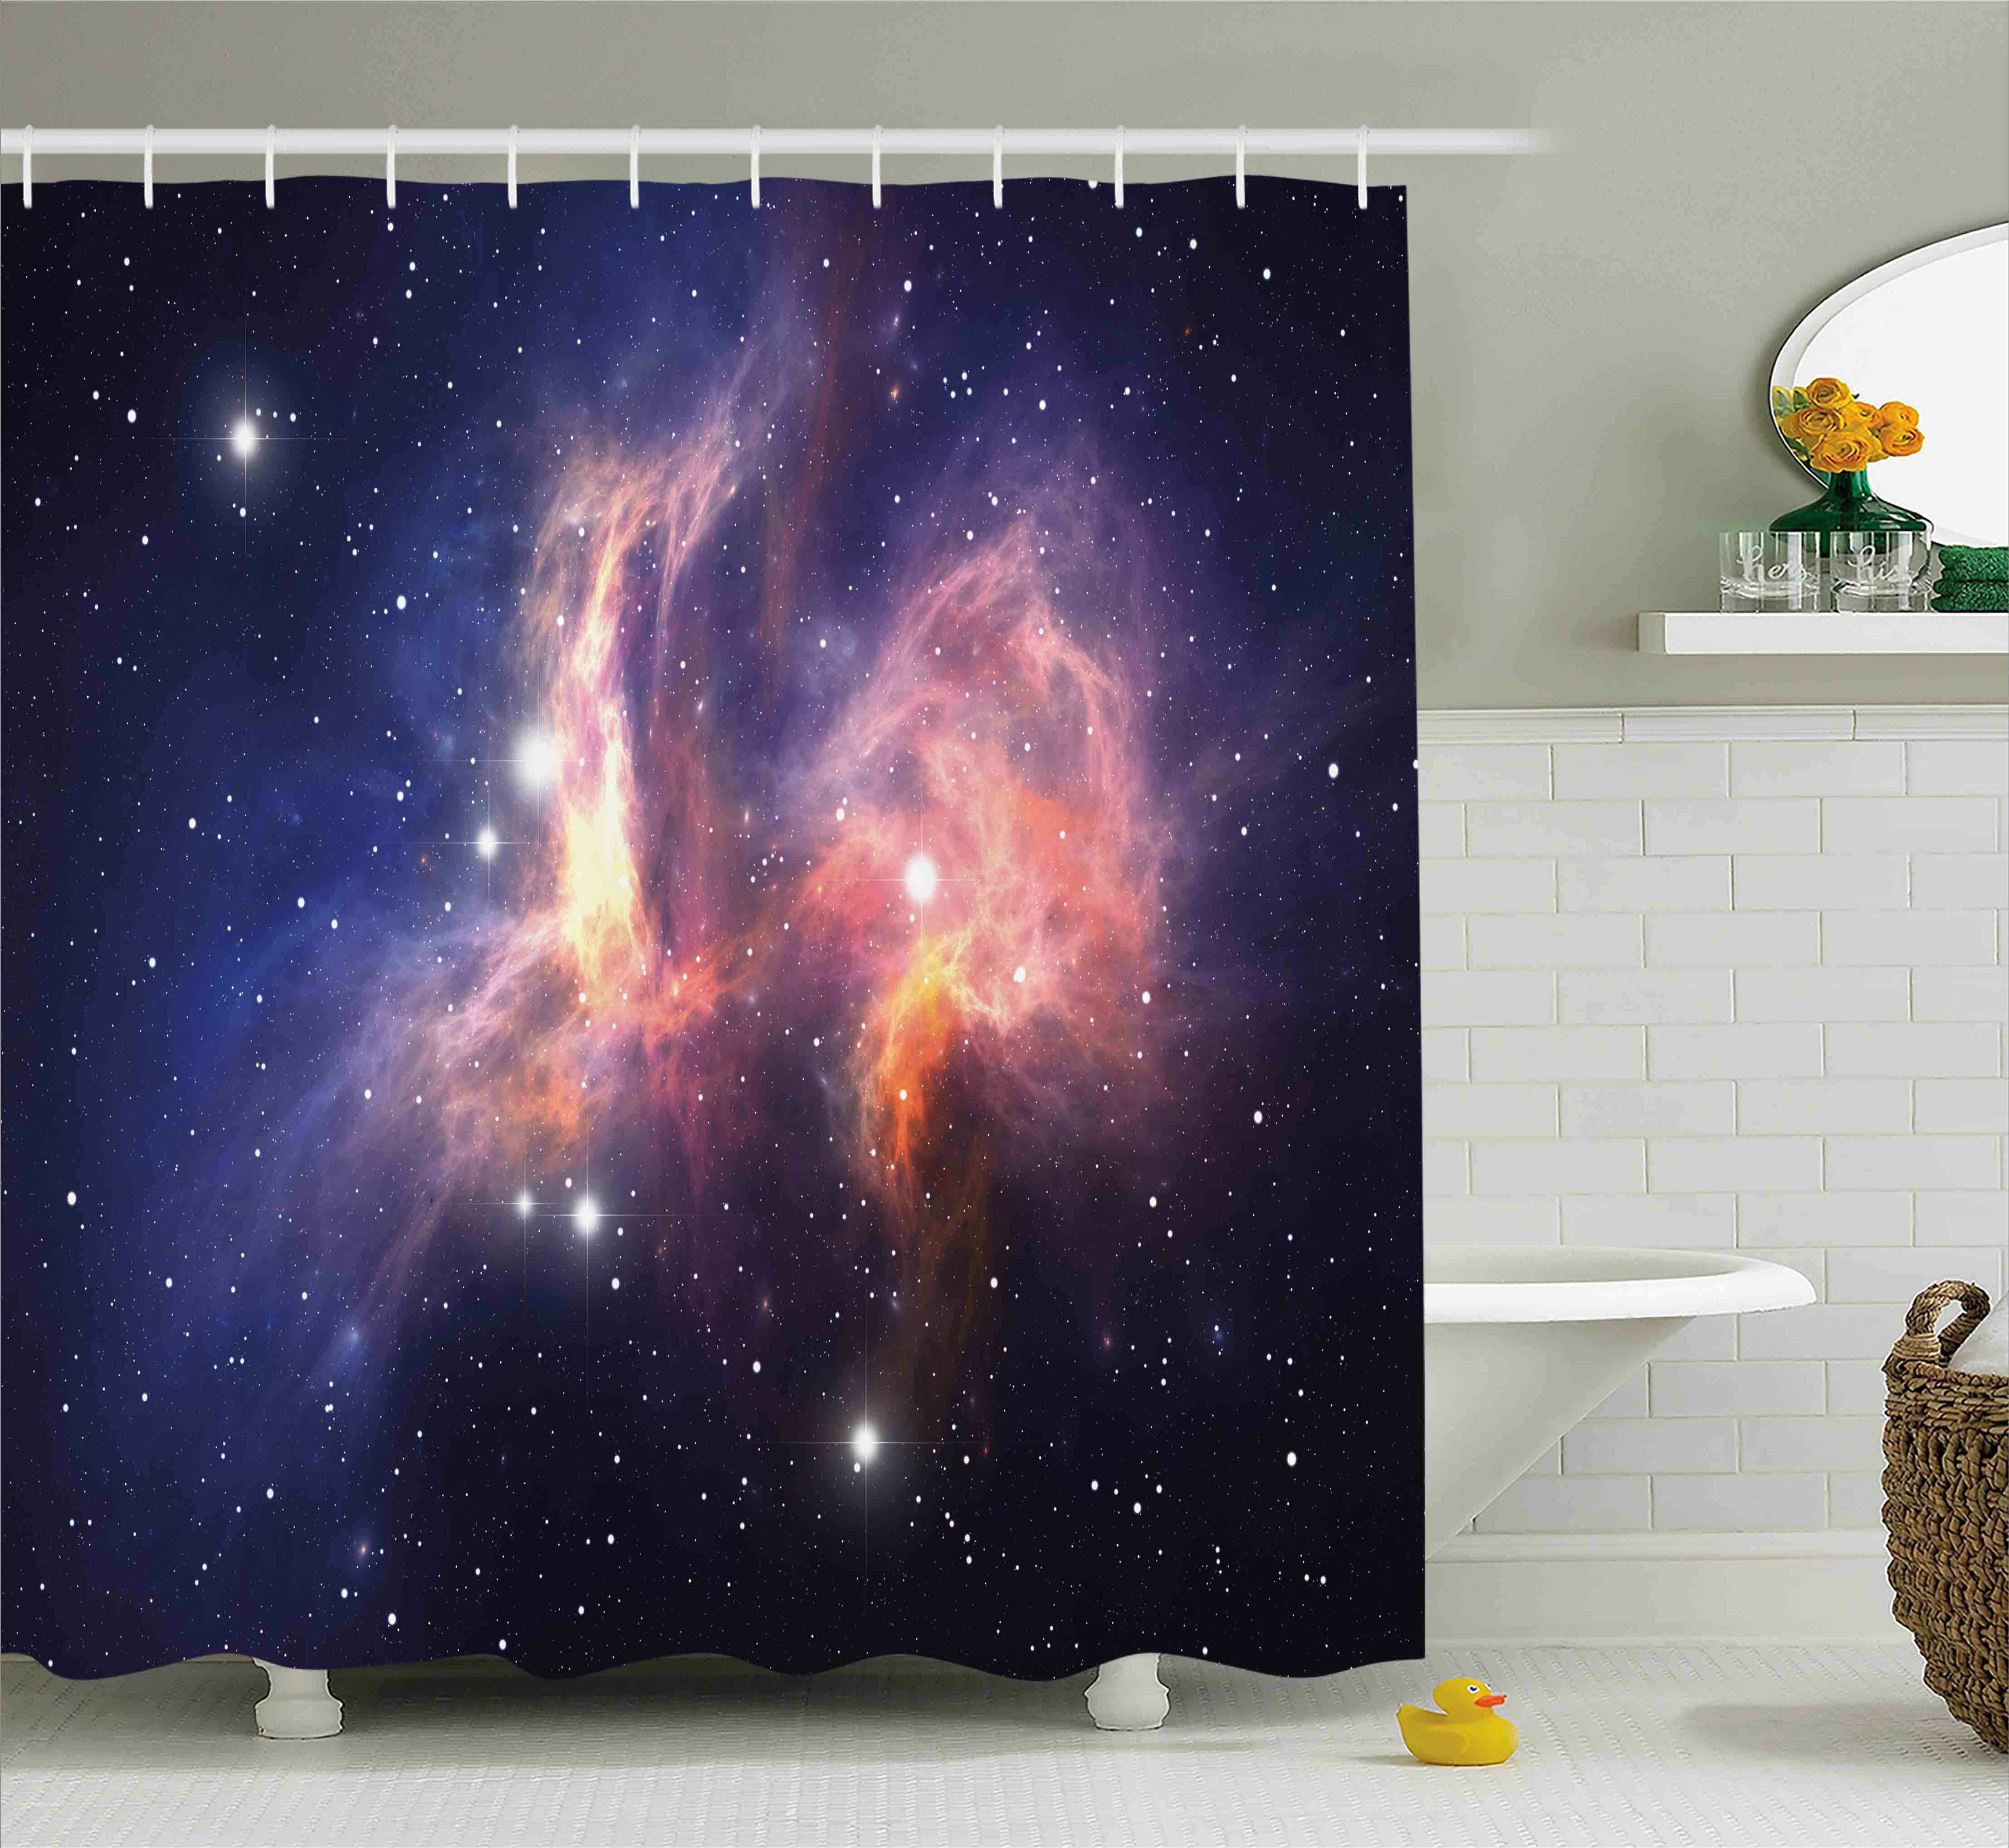 East Urban Home Stardust In Universe Shower Curtain